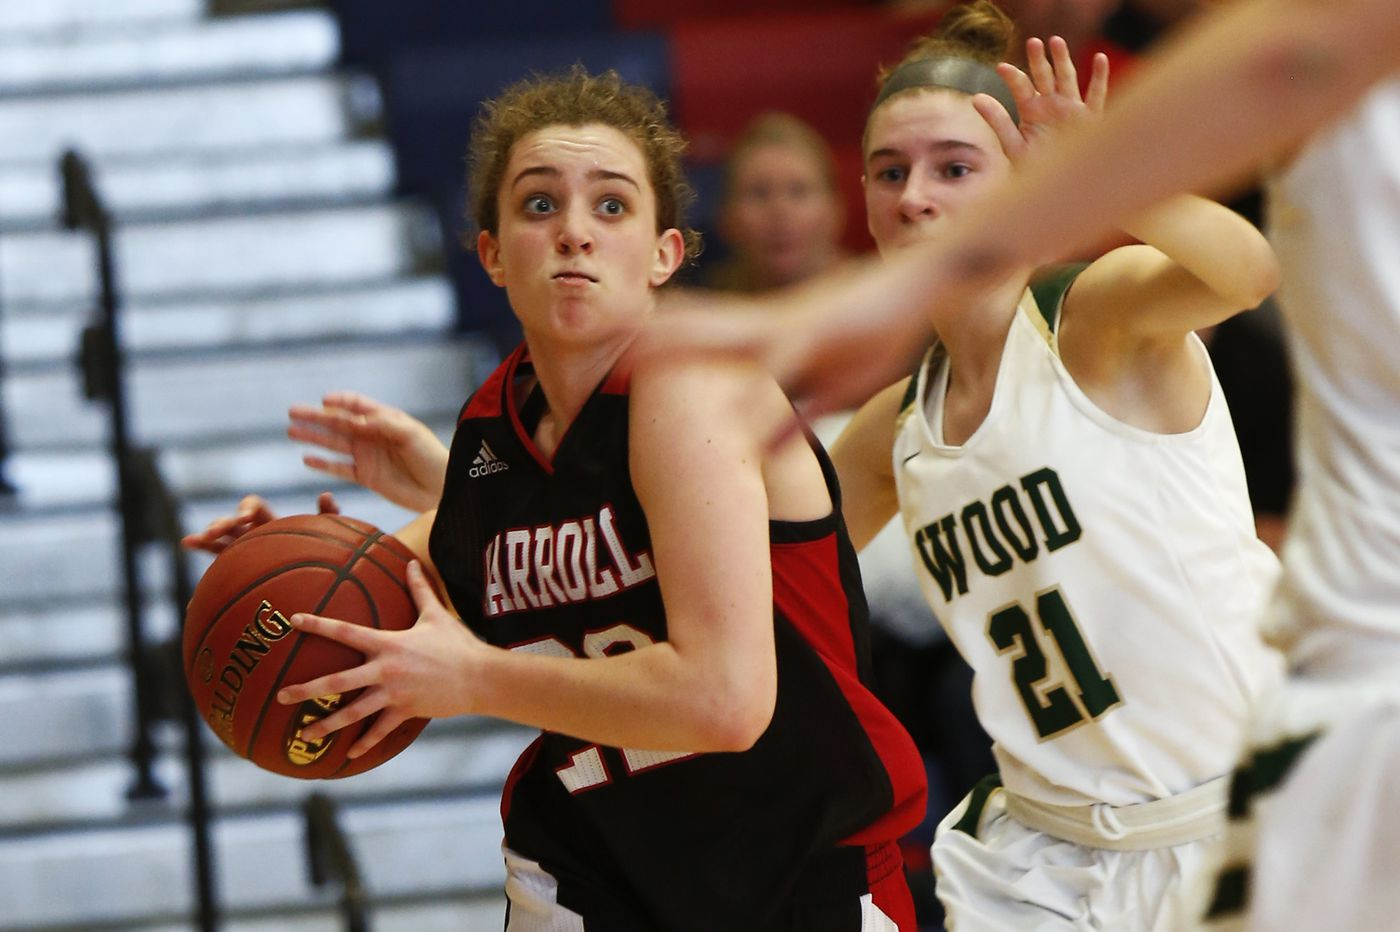 PIAA Class 5A girls' playoffs: Mary DeSimone steps up as Archbishop Carroll tops Wood and prepares for semifinals